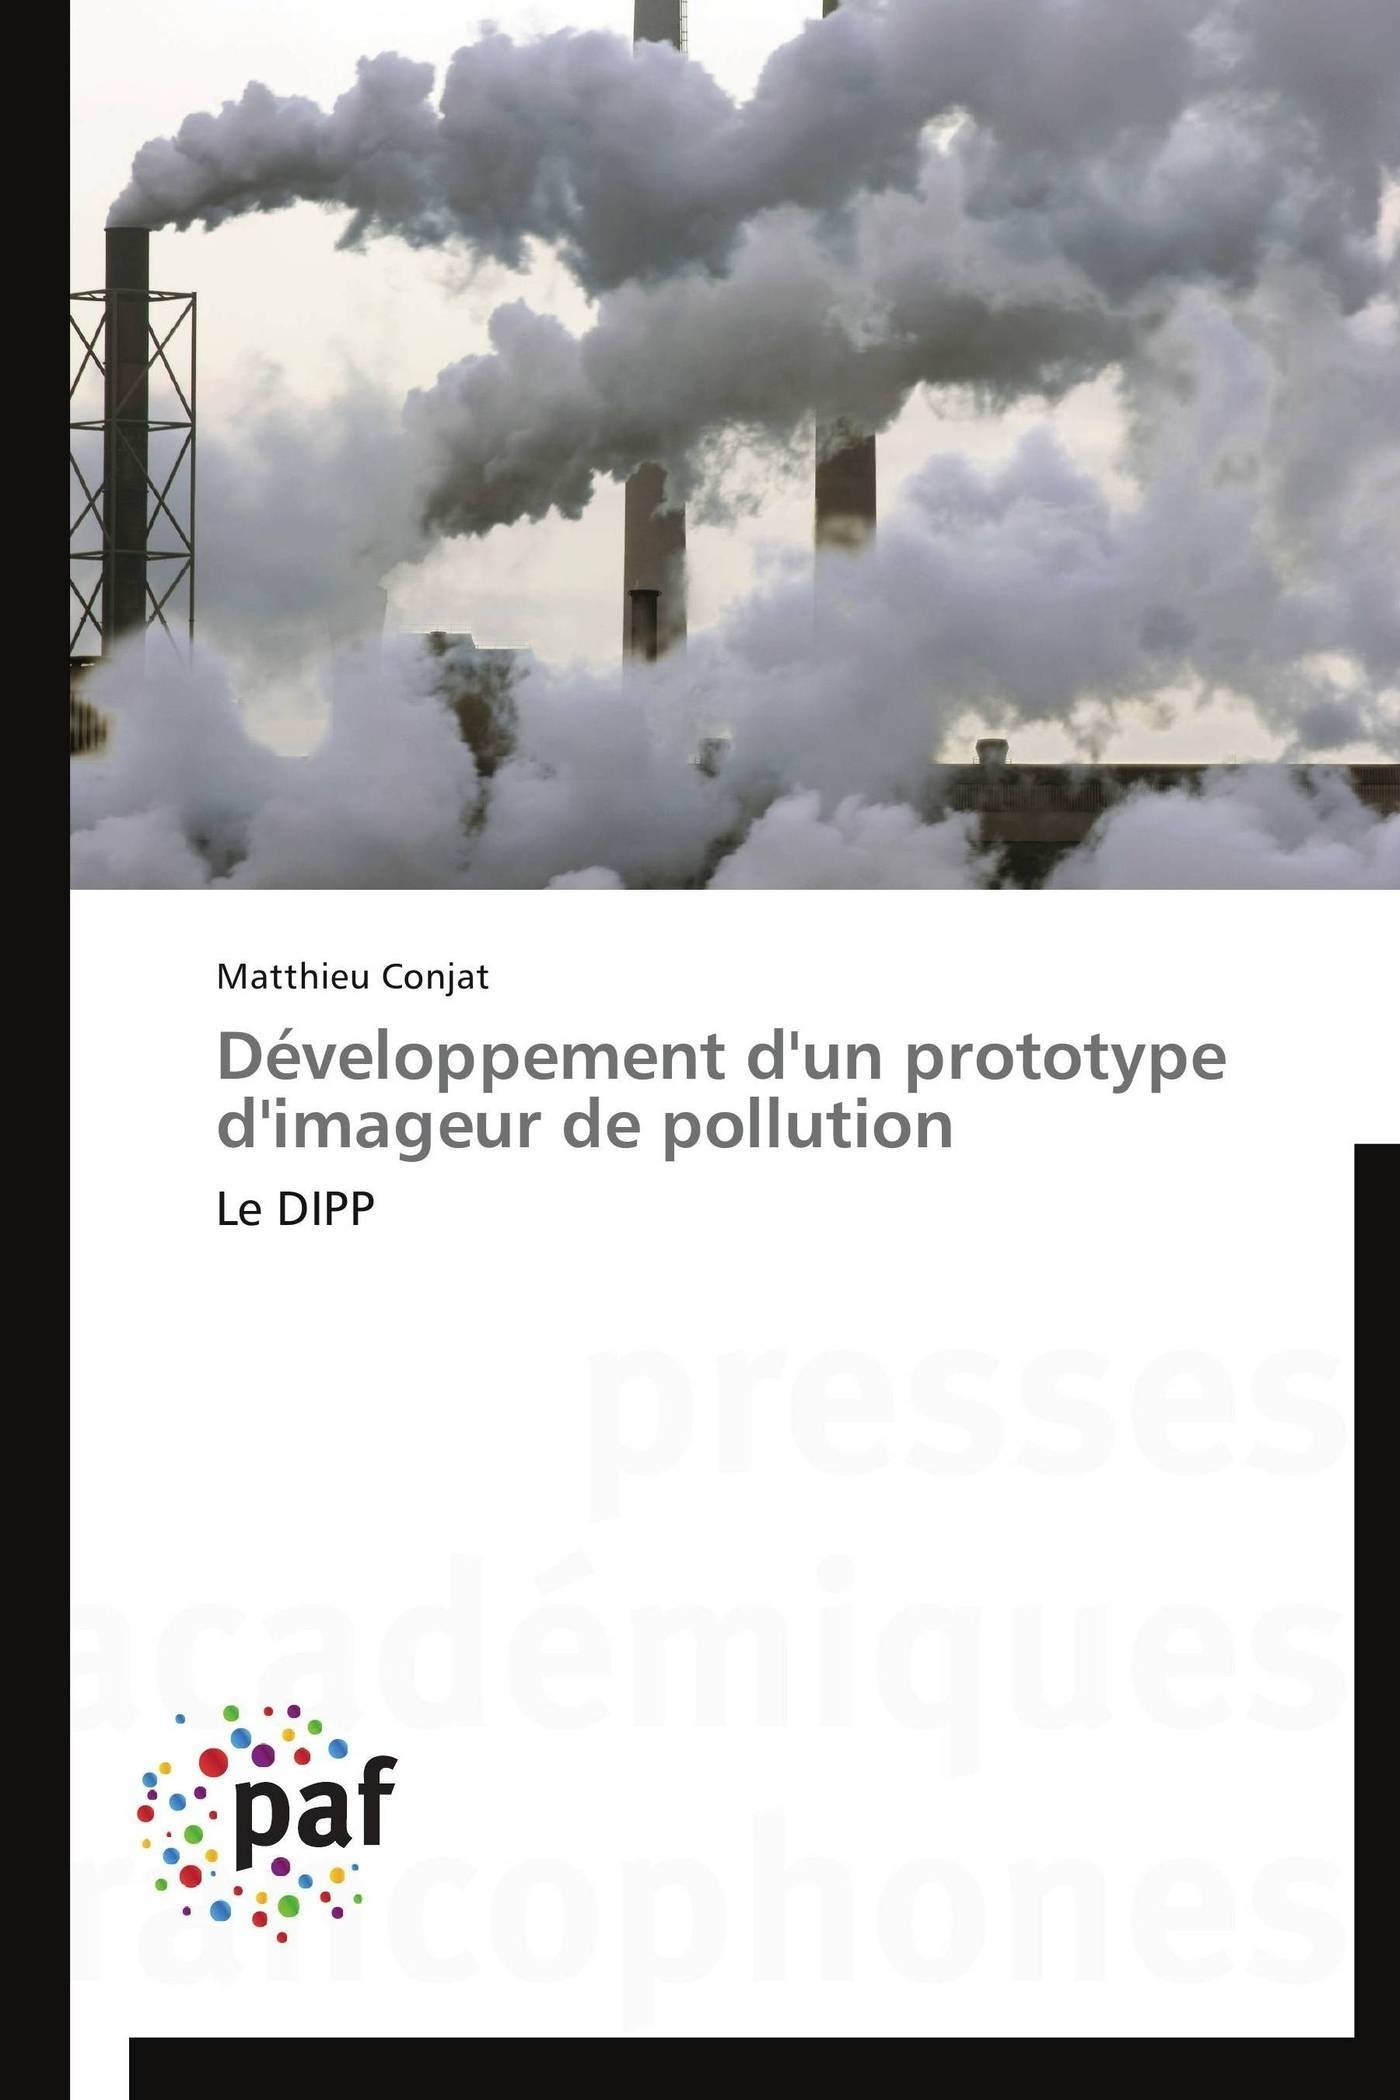 DEVELOPPEMENT D'UN PROTOTYPE D'IMAGEUR DE POLLUTION